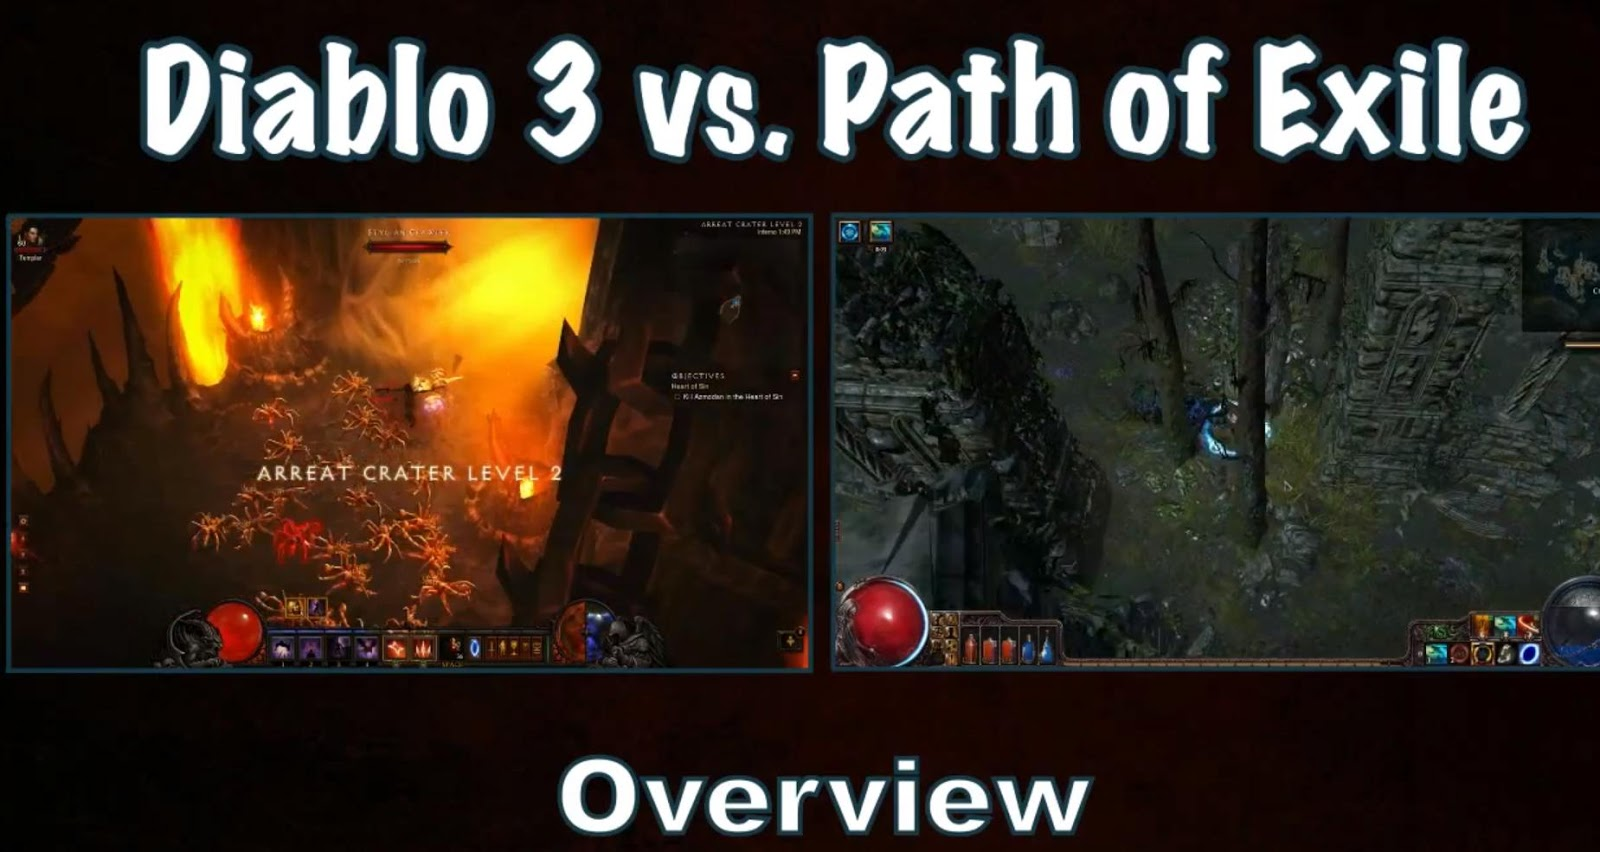 Diablo 3 vs Path of Exile - A Side By Side Analysis from